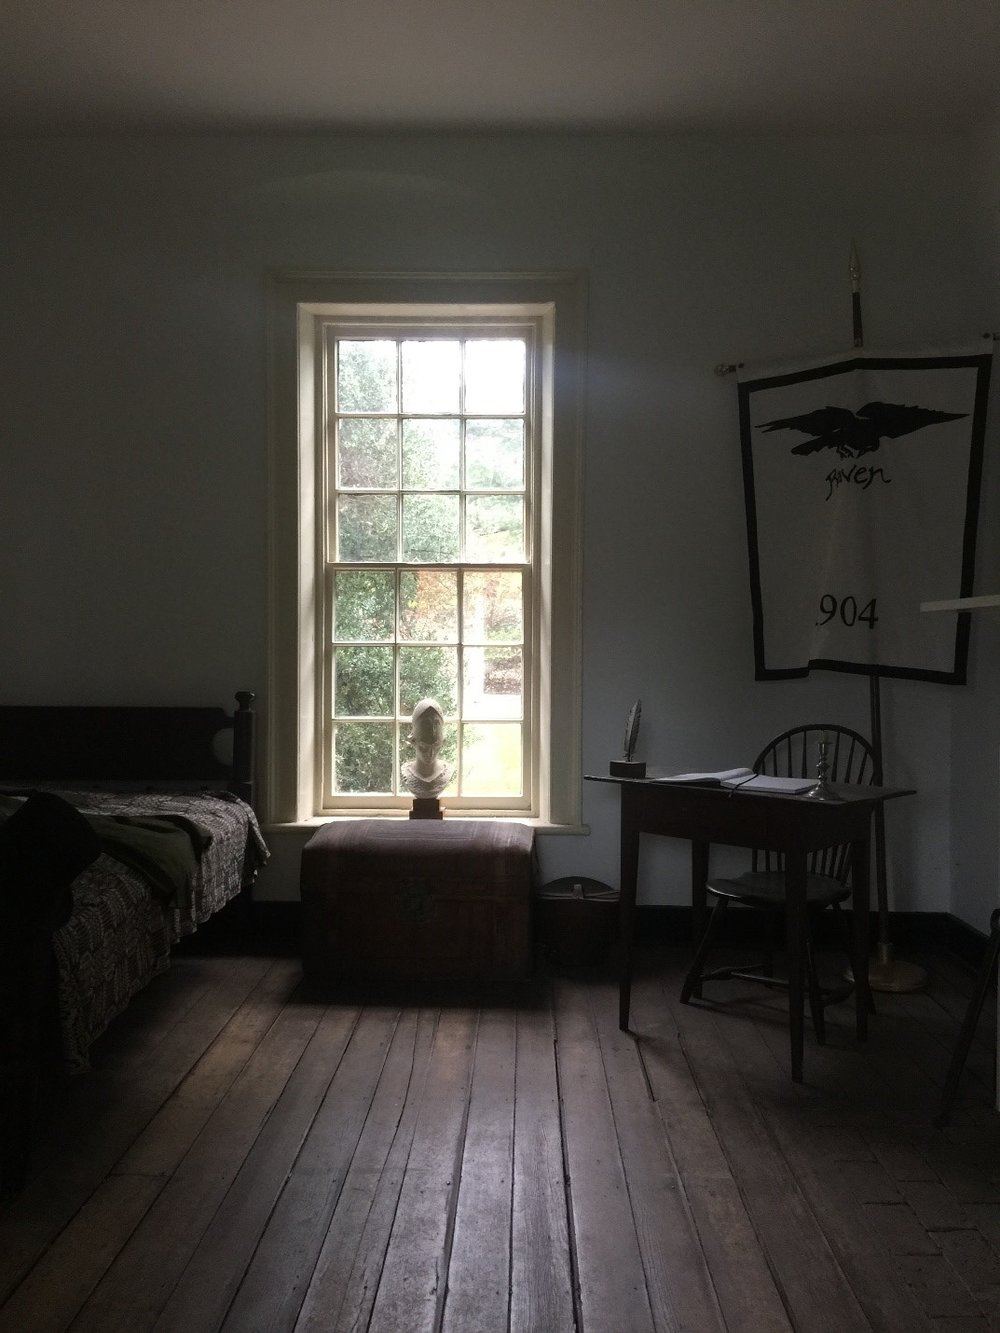 Interior of Edgar Allan Poe's room